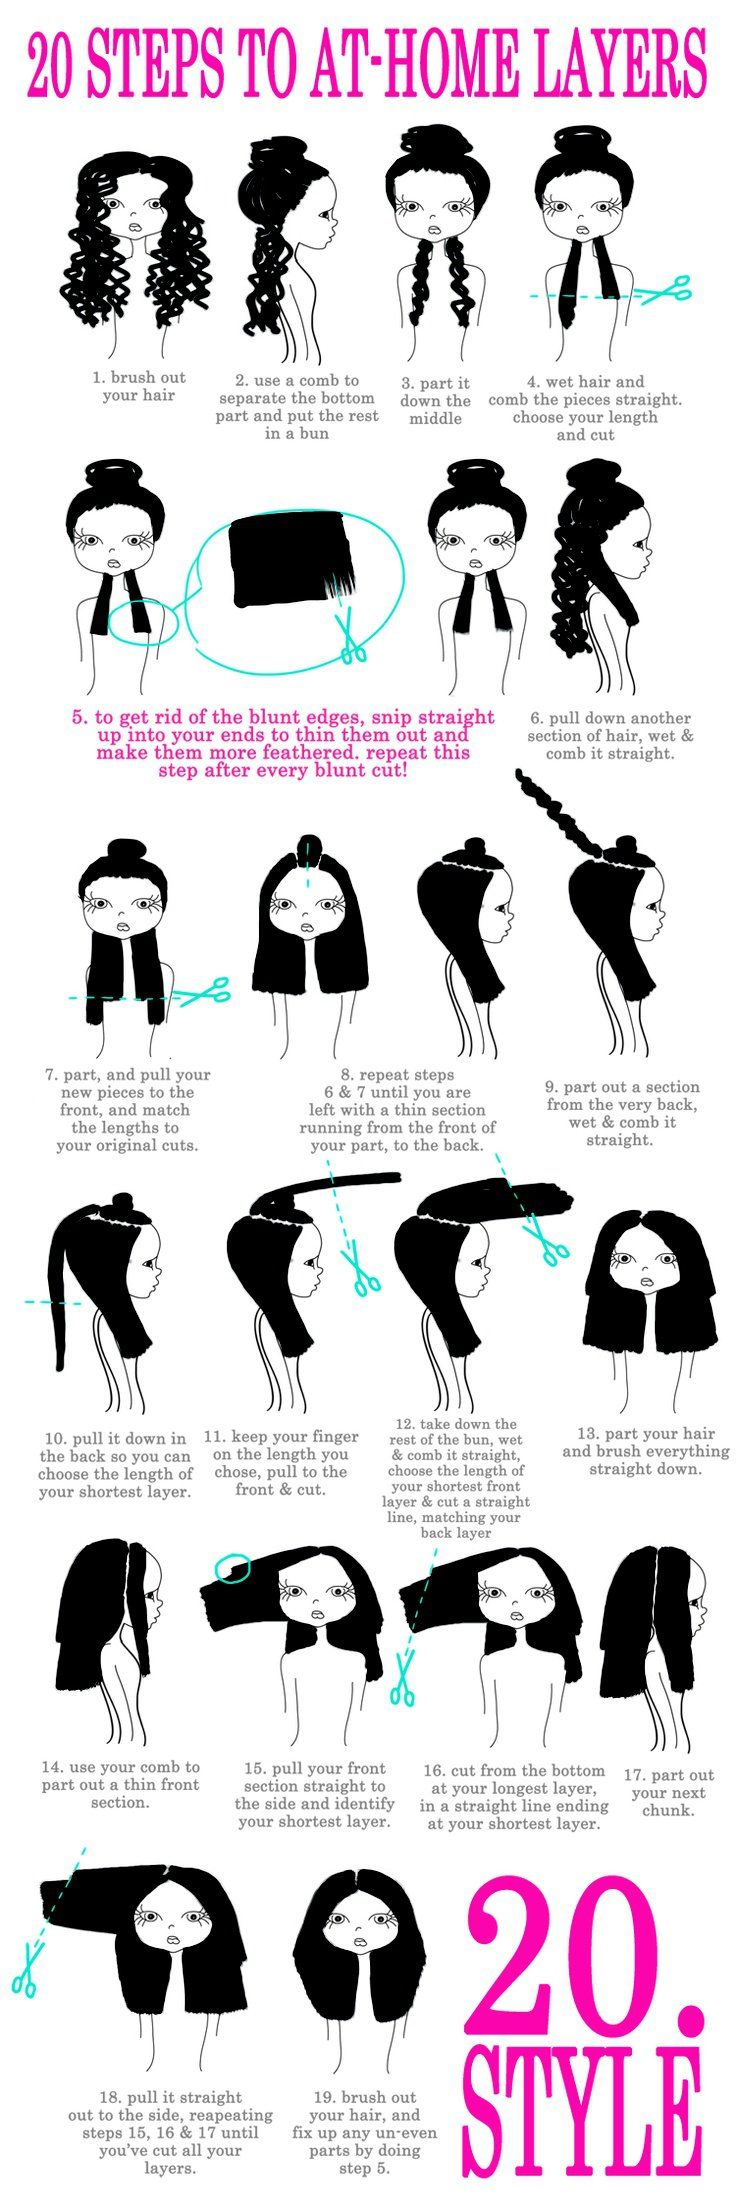 Exactly how my hair dresser does it. So long as you are confident and have steady hands!! Haha